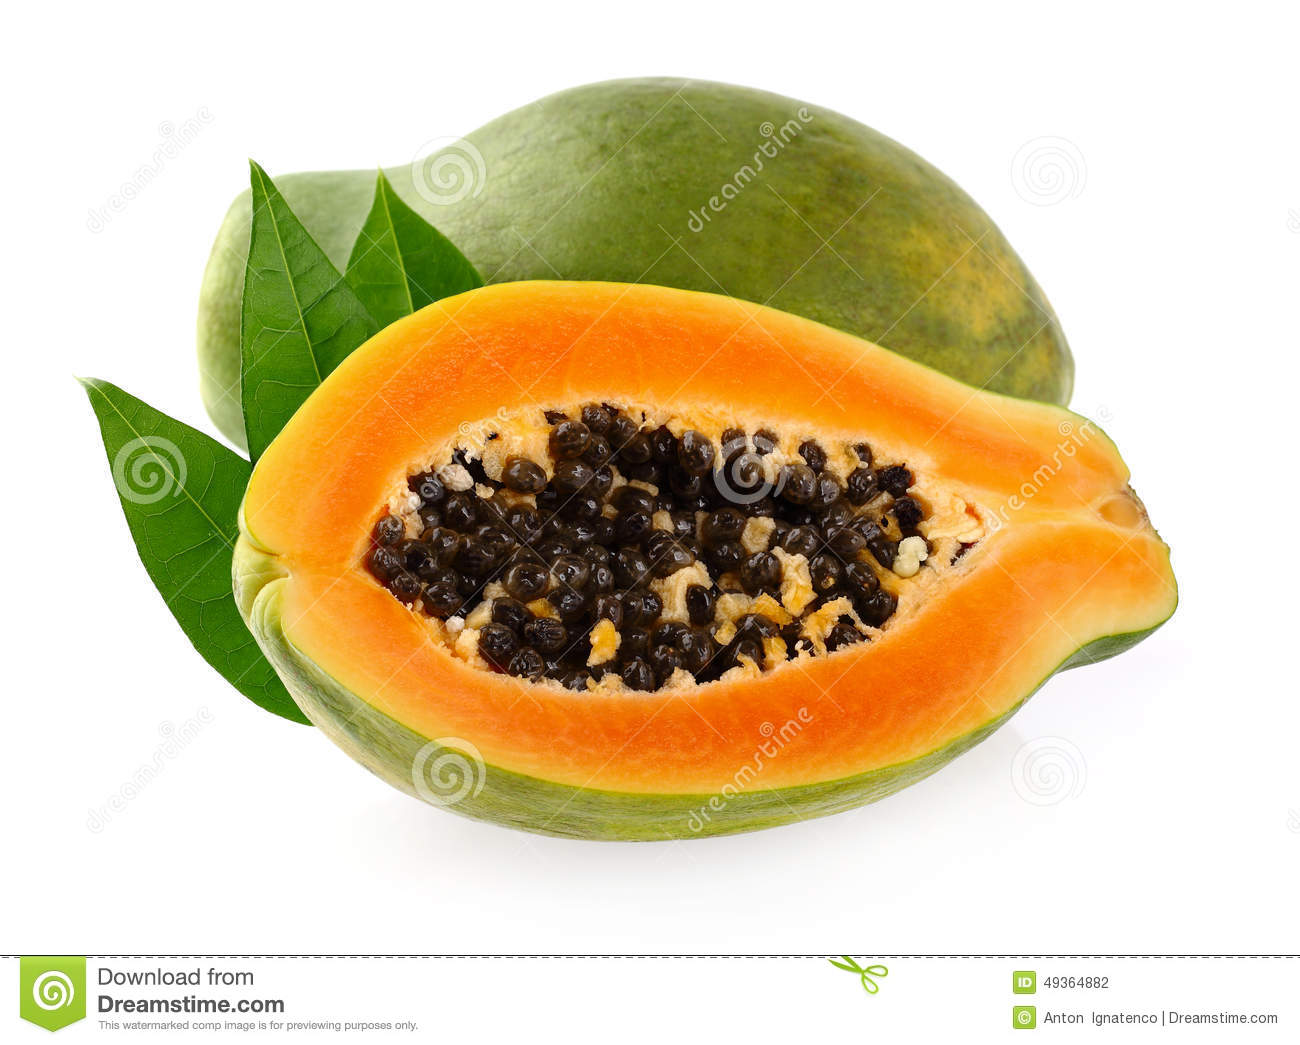 Papaya Fruit Nutrition Facts - Fruit Names A-Z With Pictures